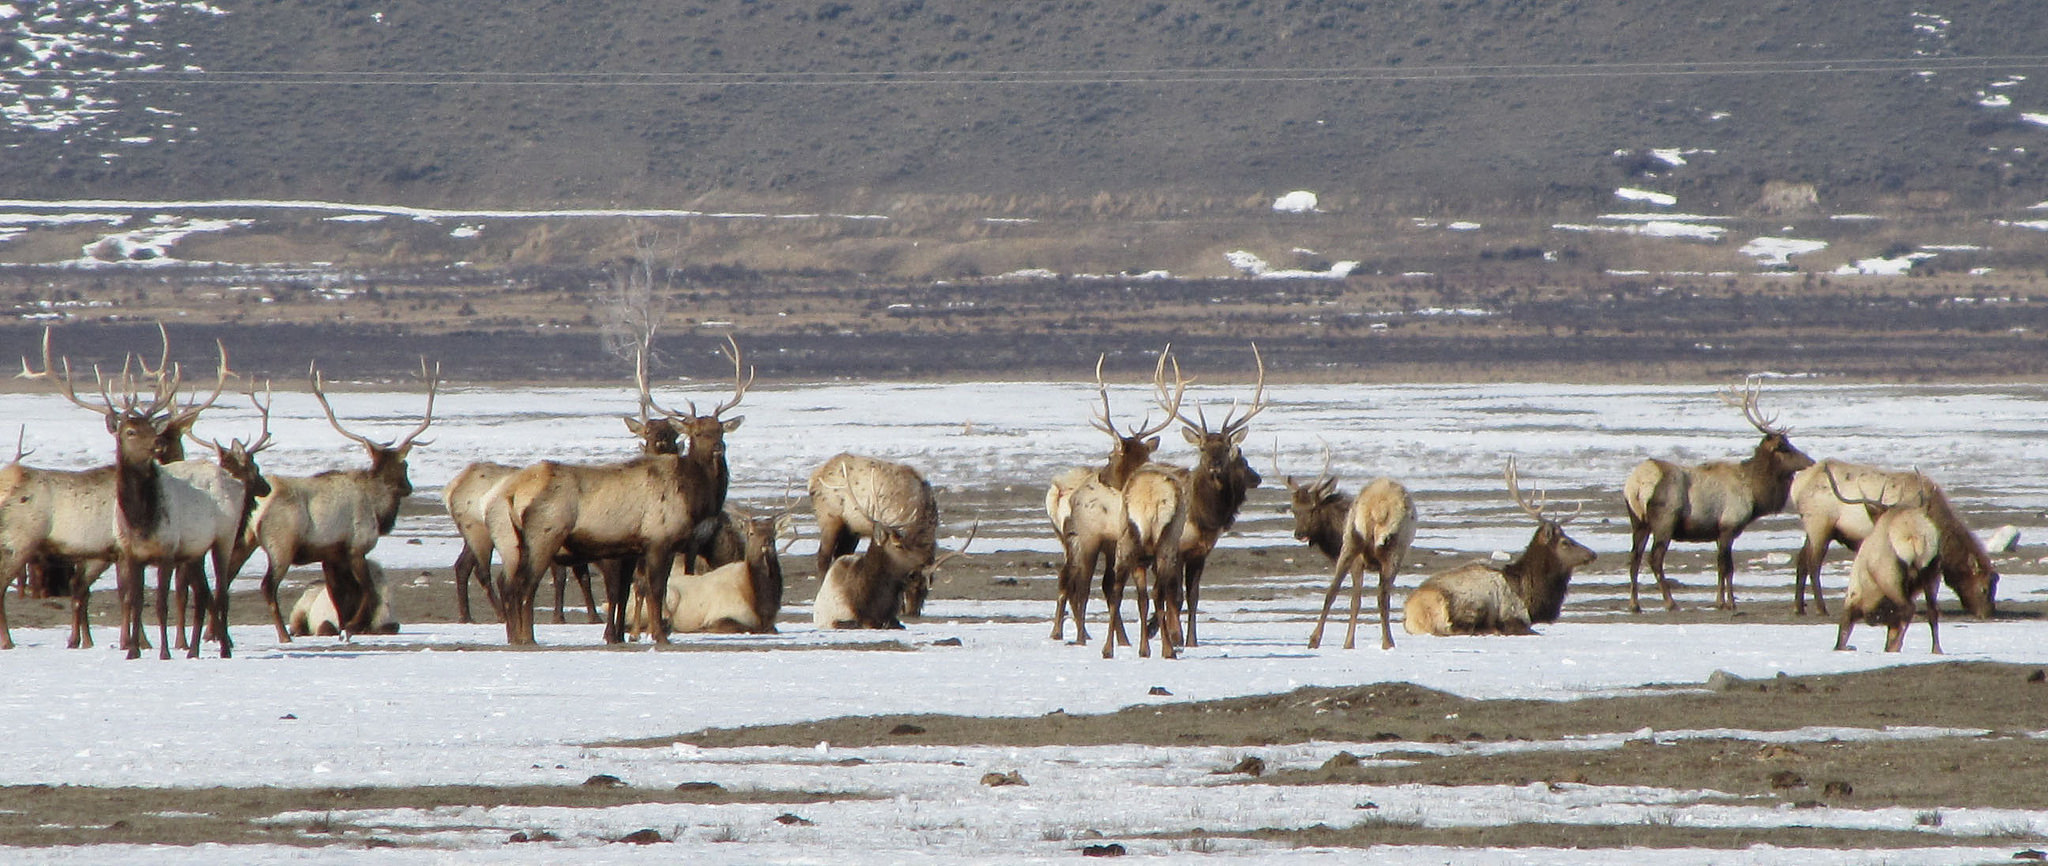 Drone Wreaks Havoc on Elk National Refuge